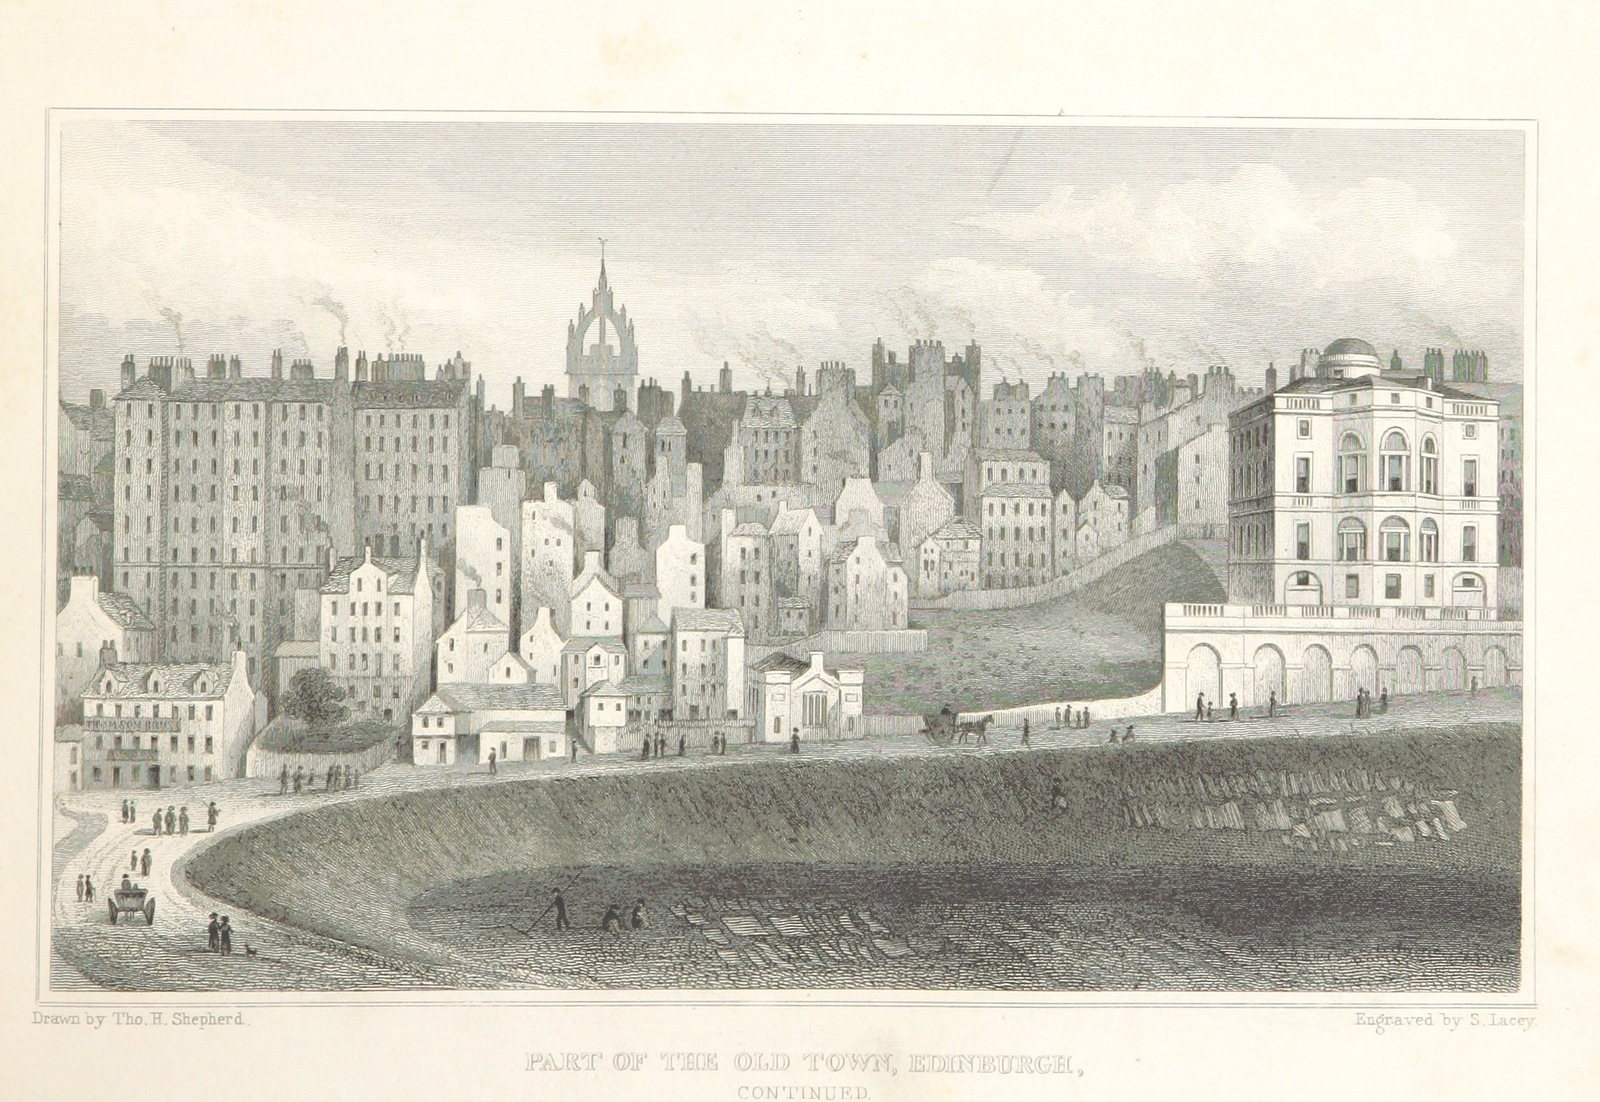 """Old Town from """"Modern Athens, displayed in a series of views; or, Edinburgh in the nineteenth century; exhibiting the whole of the new buildings, modern improvements, antiquities, & picturesque scenery of the Scottish metropolis & its environs, from original drawings by Mr. T. H. Shepherd. With historical, topographical & critical illustrations [by John Britton]"""""""